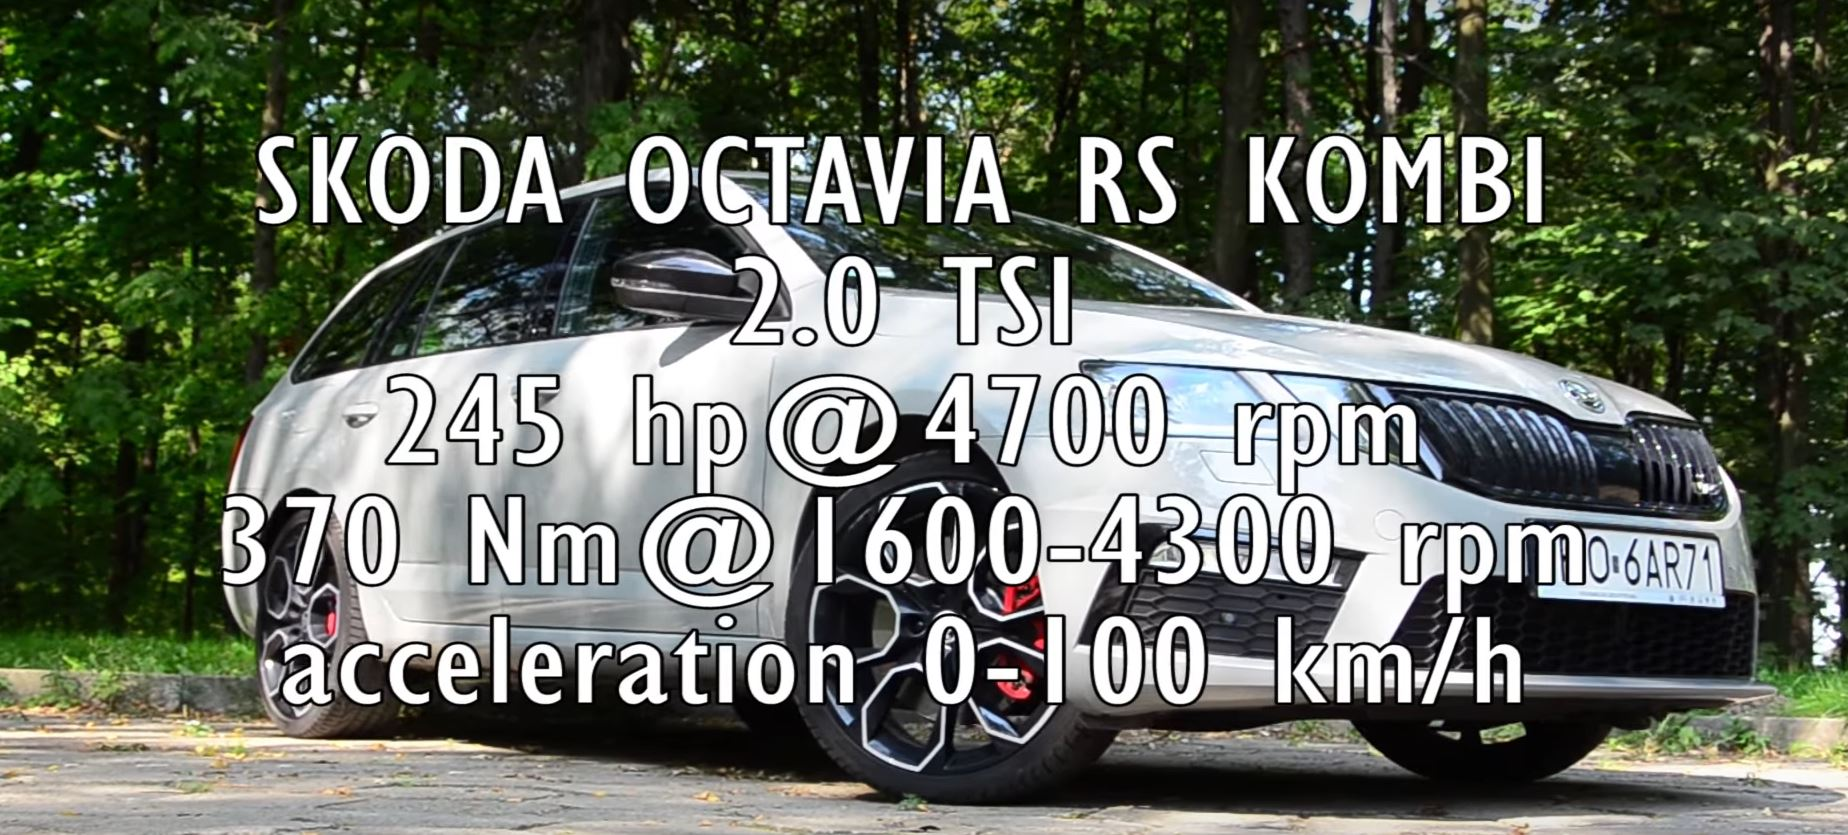 2018 Skoda Octavia Rs 245 Acceleration Test 0 To 100 Km H In 6 4 Seconds Autoevolution